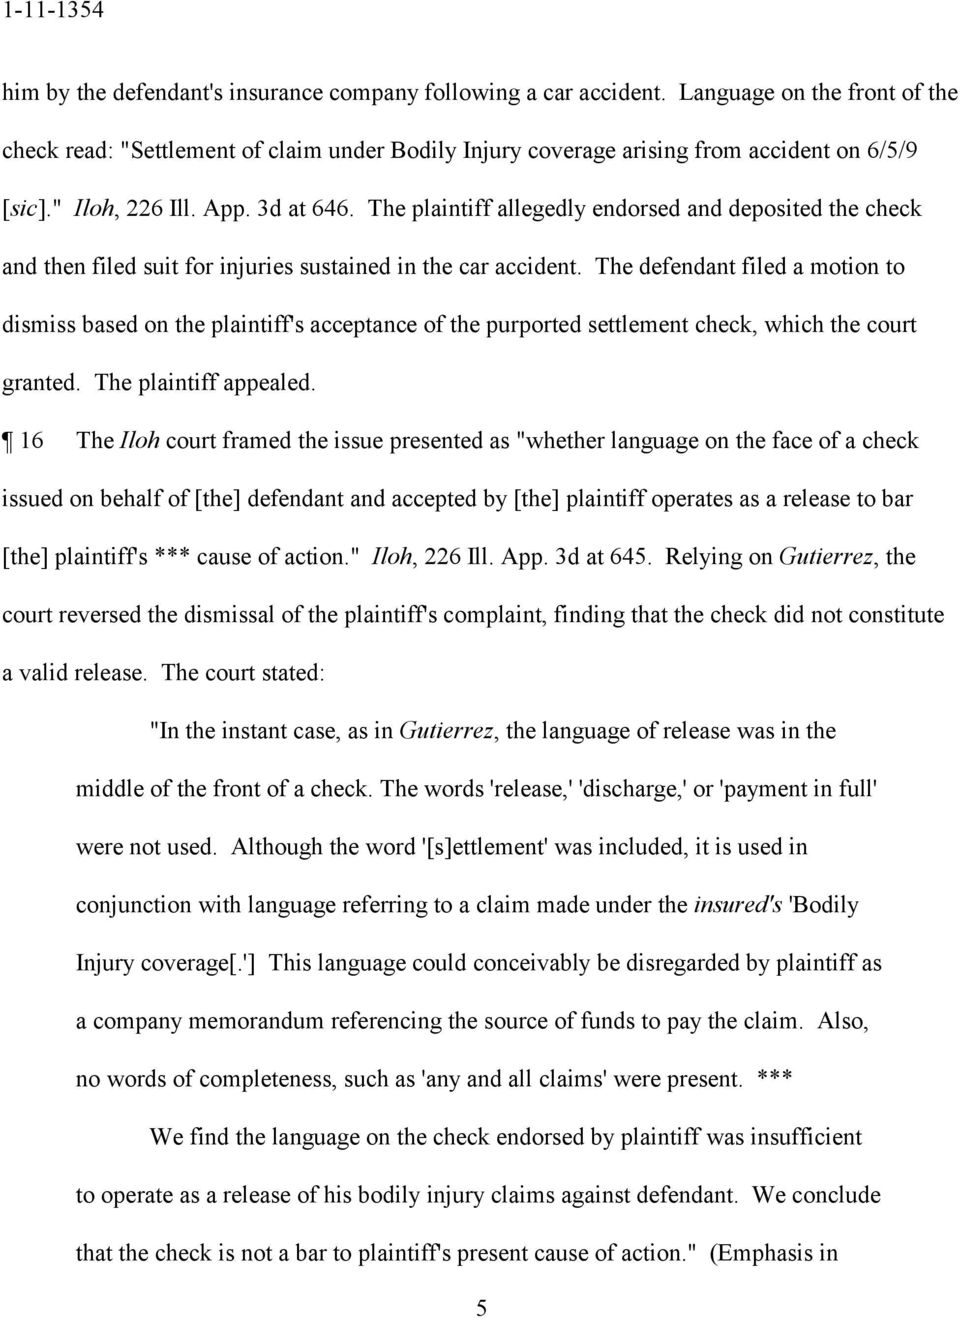 The defendant filed a motion to dismiss based on the plaintiff's acceptance of the purported settlement check, which the court granted. The plaintiff appealed.